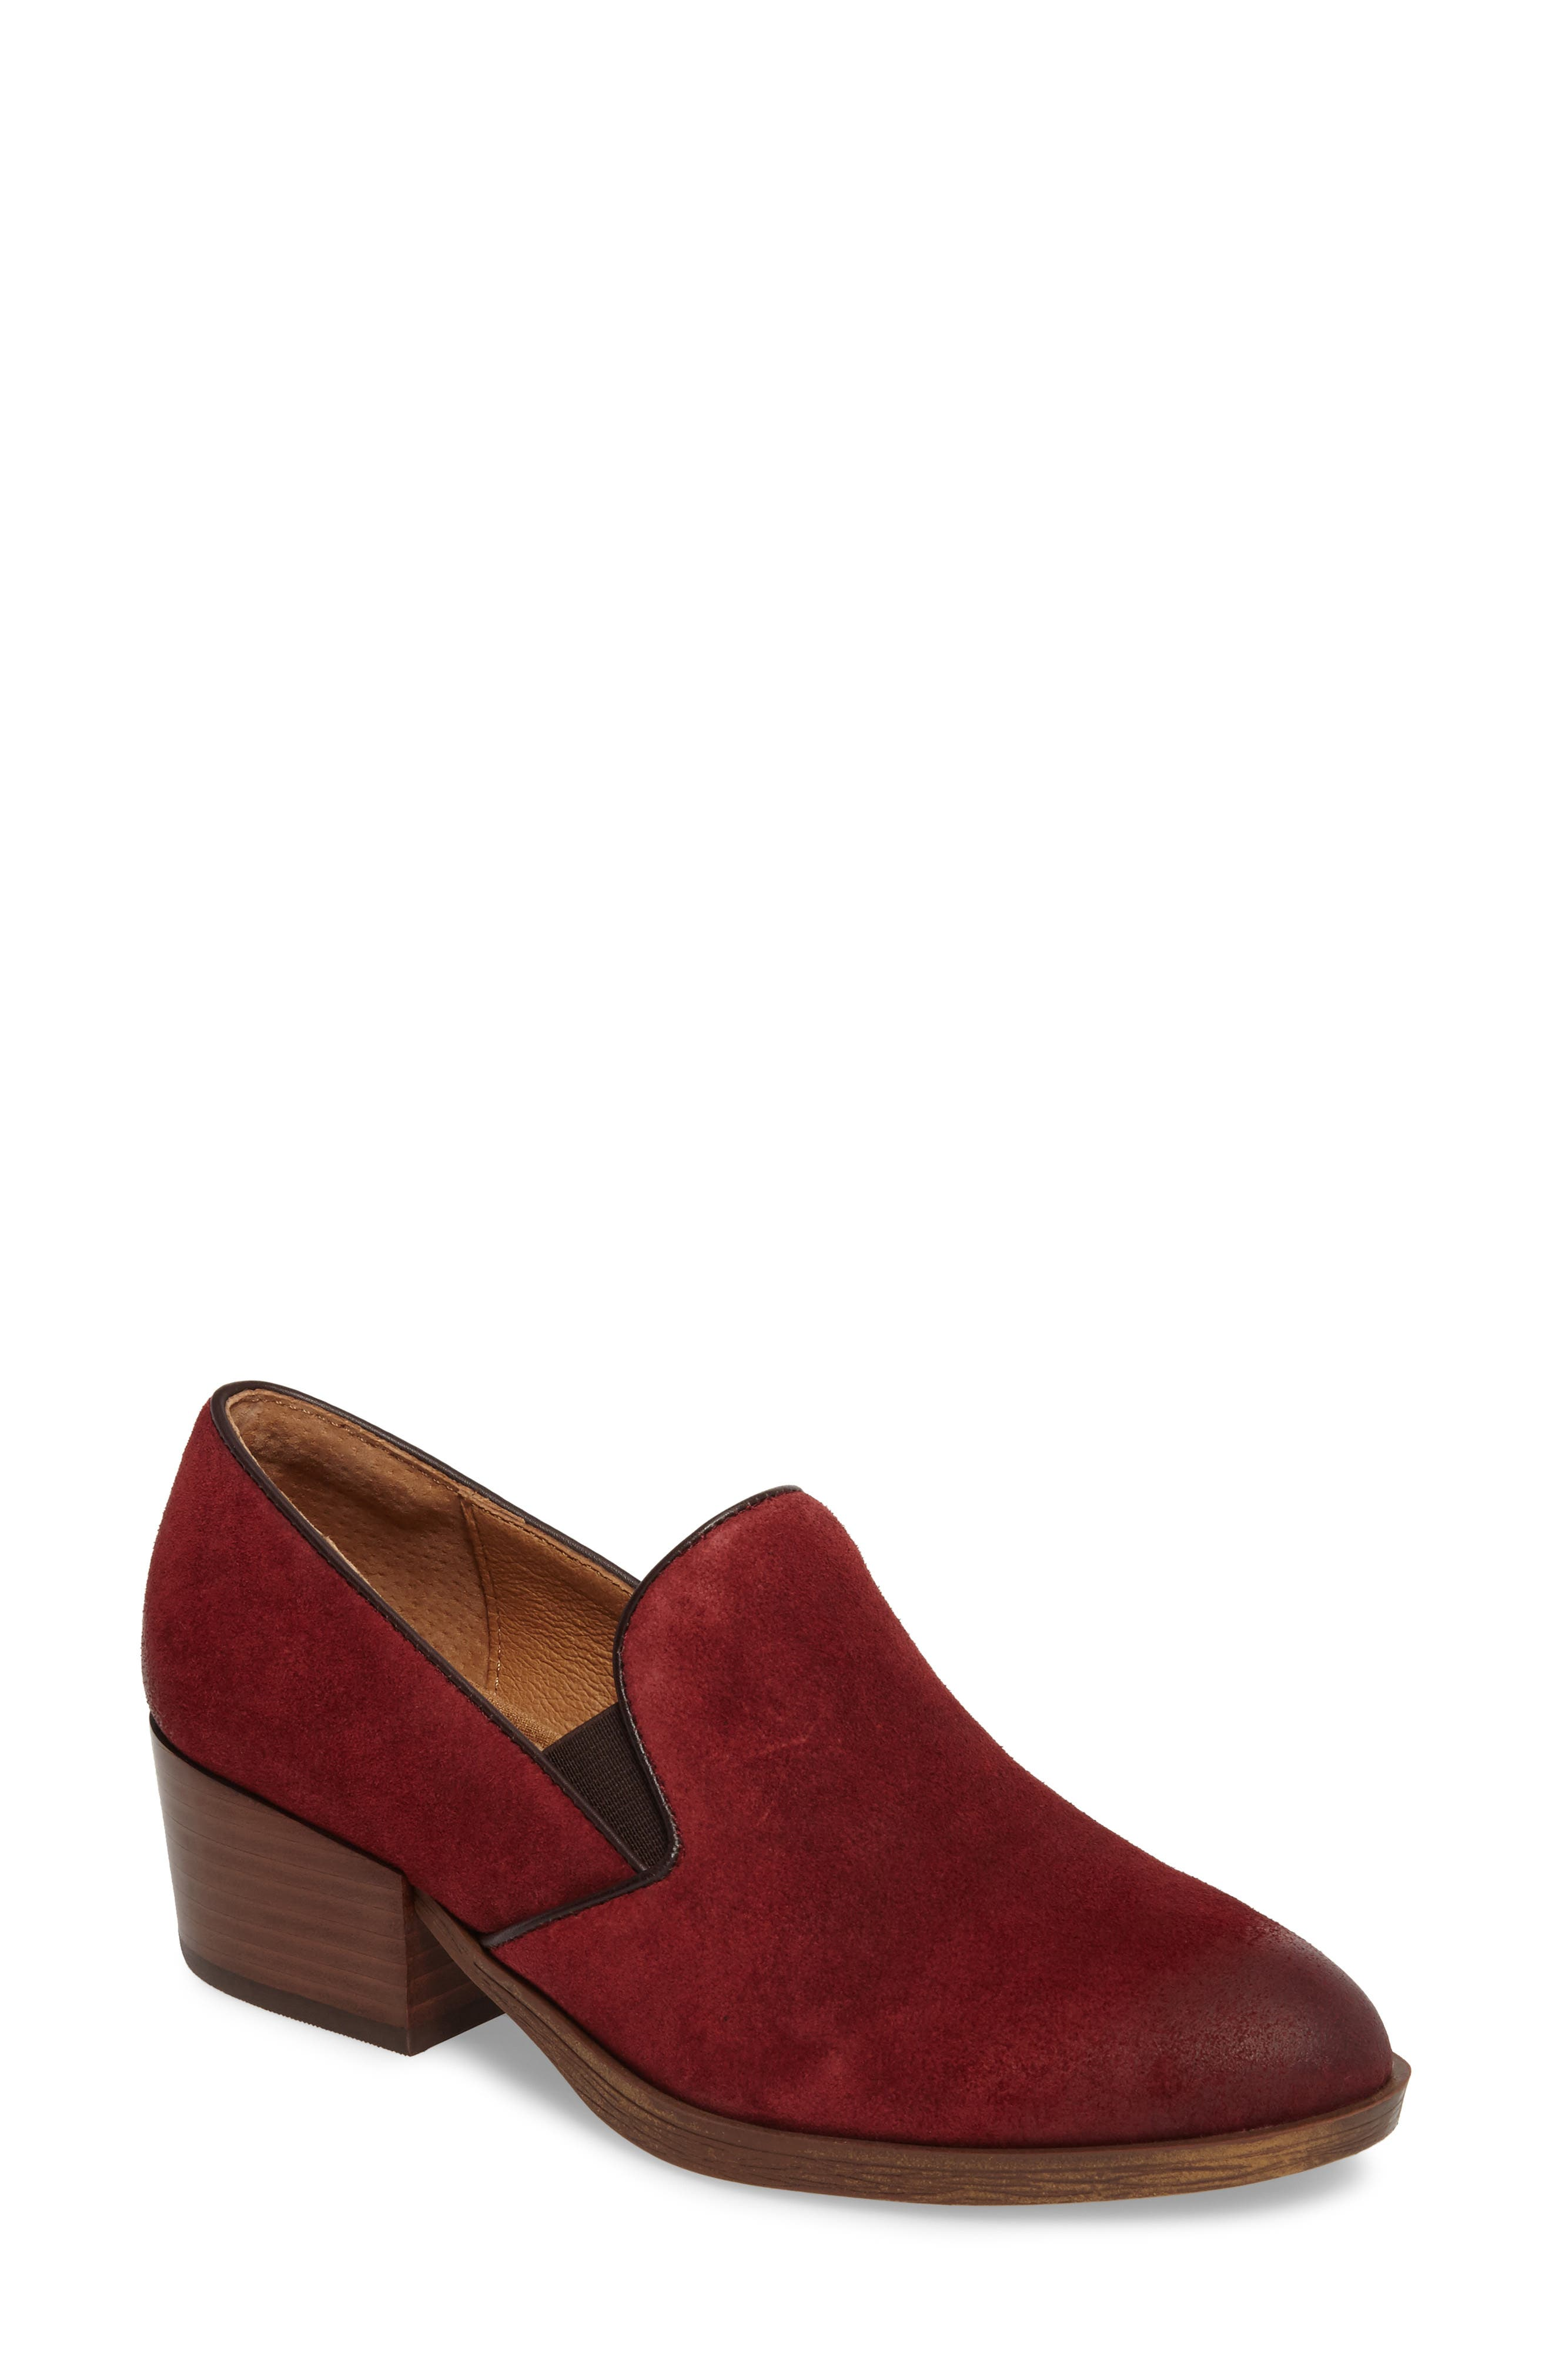 Velina Pump,                         Main,                         color, Bordo Suede